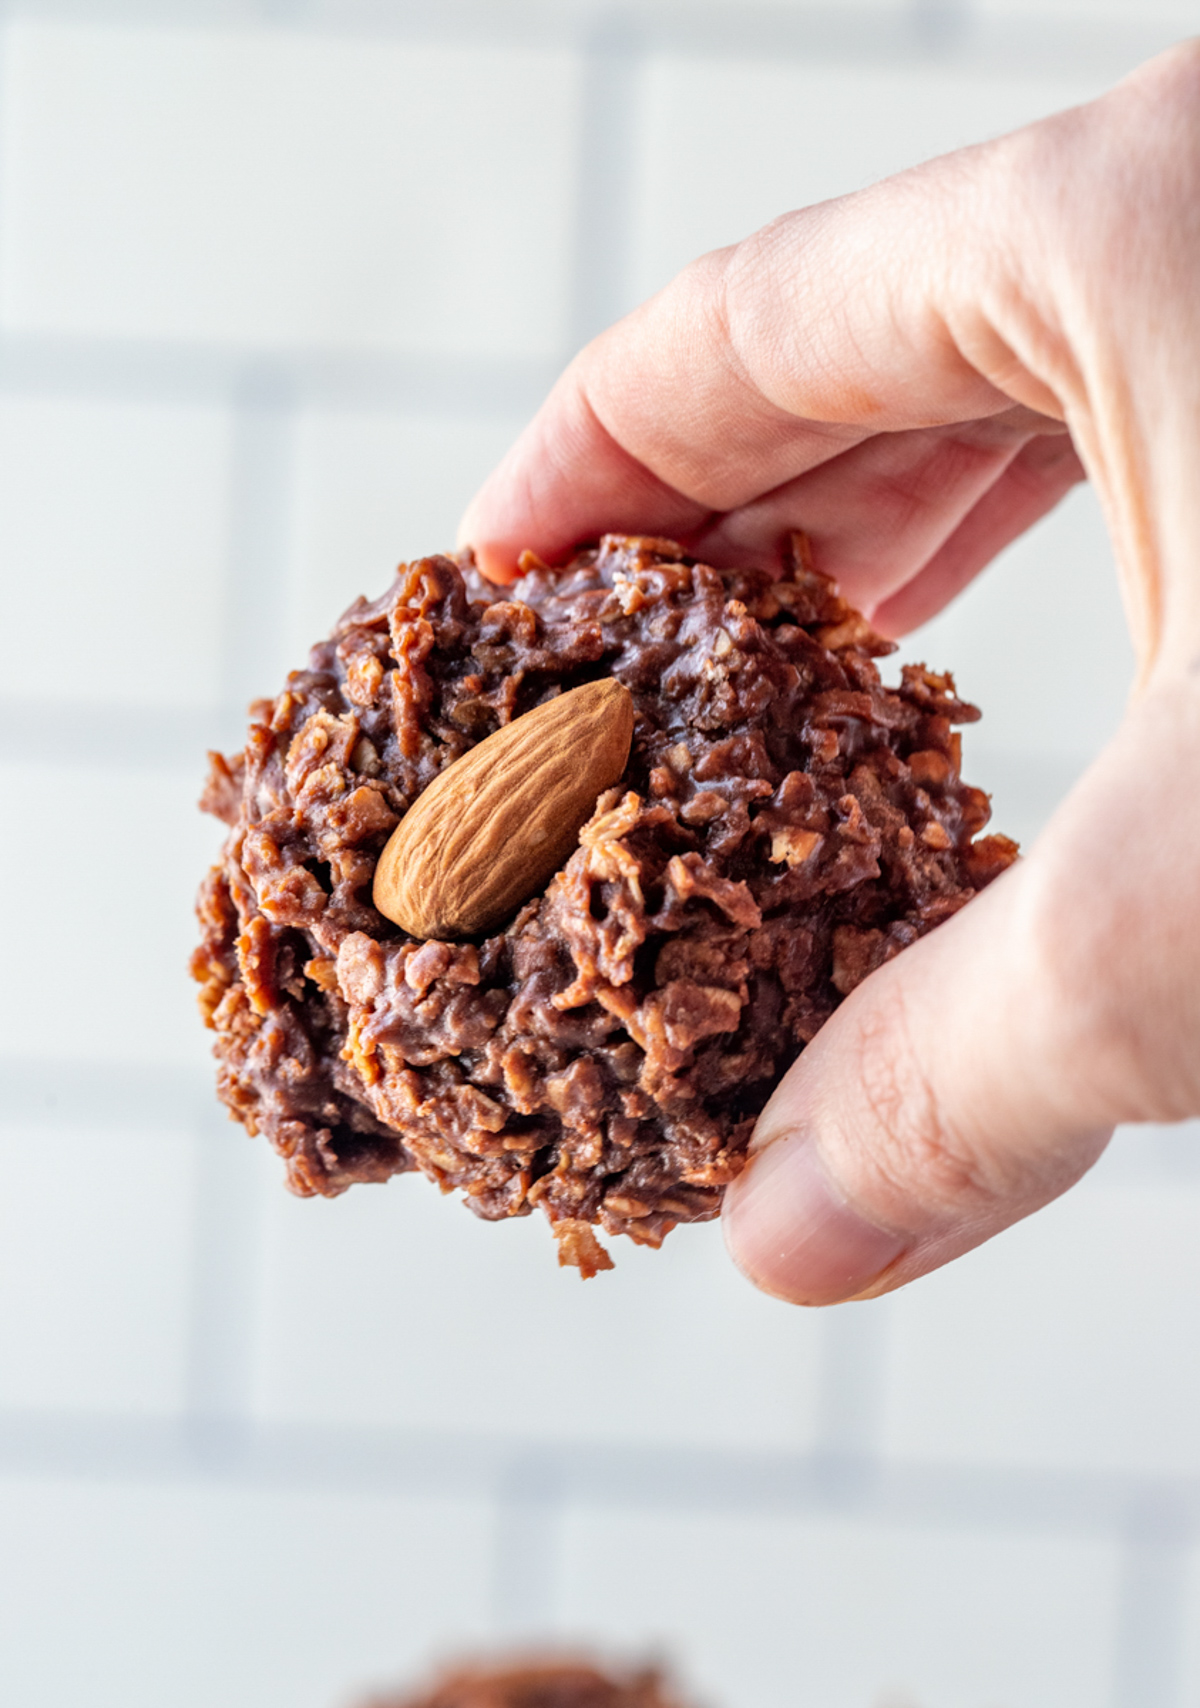 Hand holding one No Bake Almond Joy Cookie